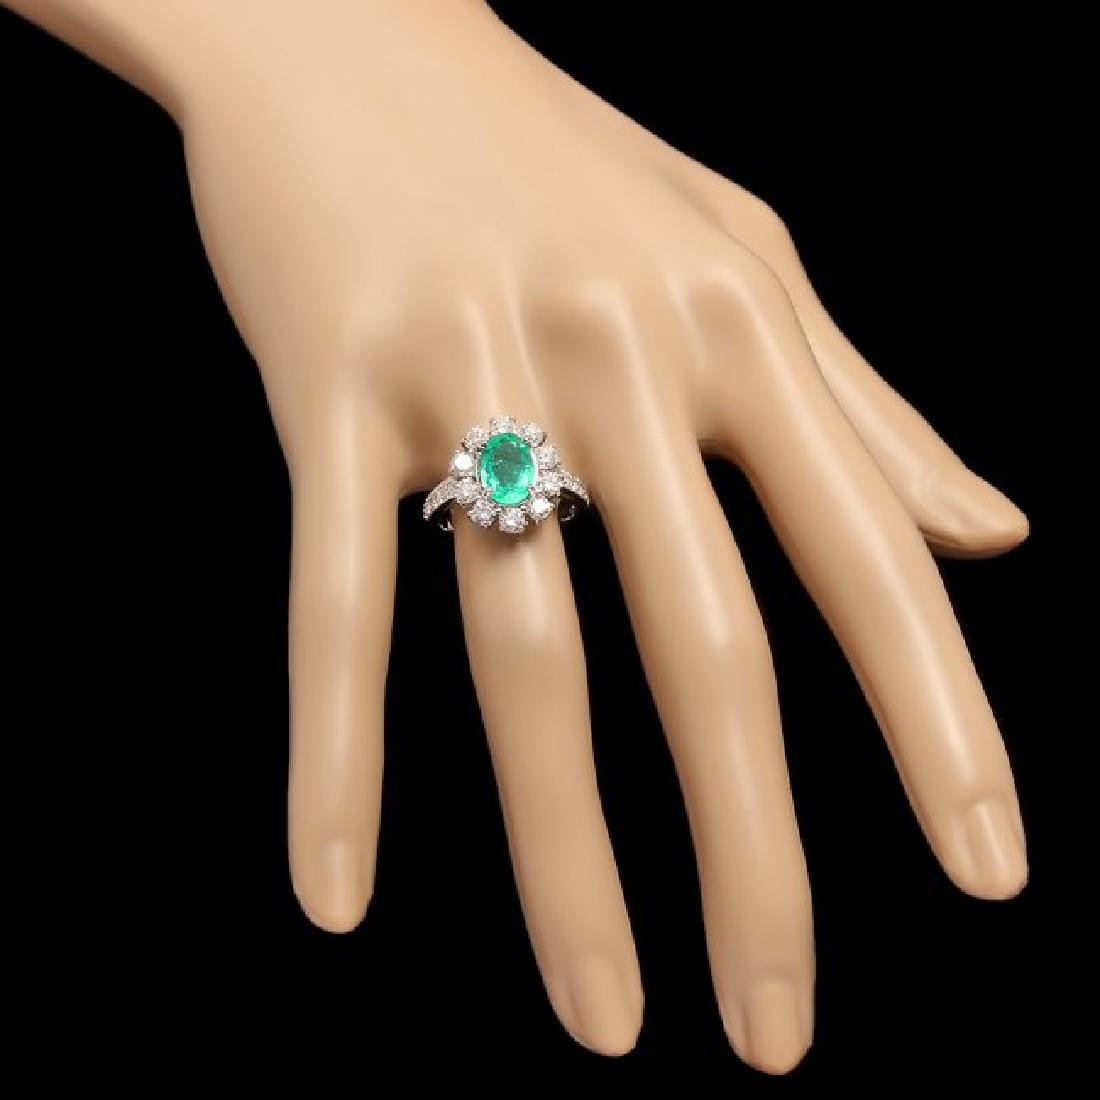 14k White Gold 1.50ct Emerald 1.45ct Diamond Ring - 3